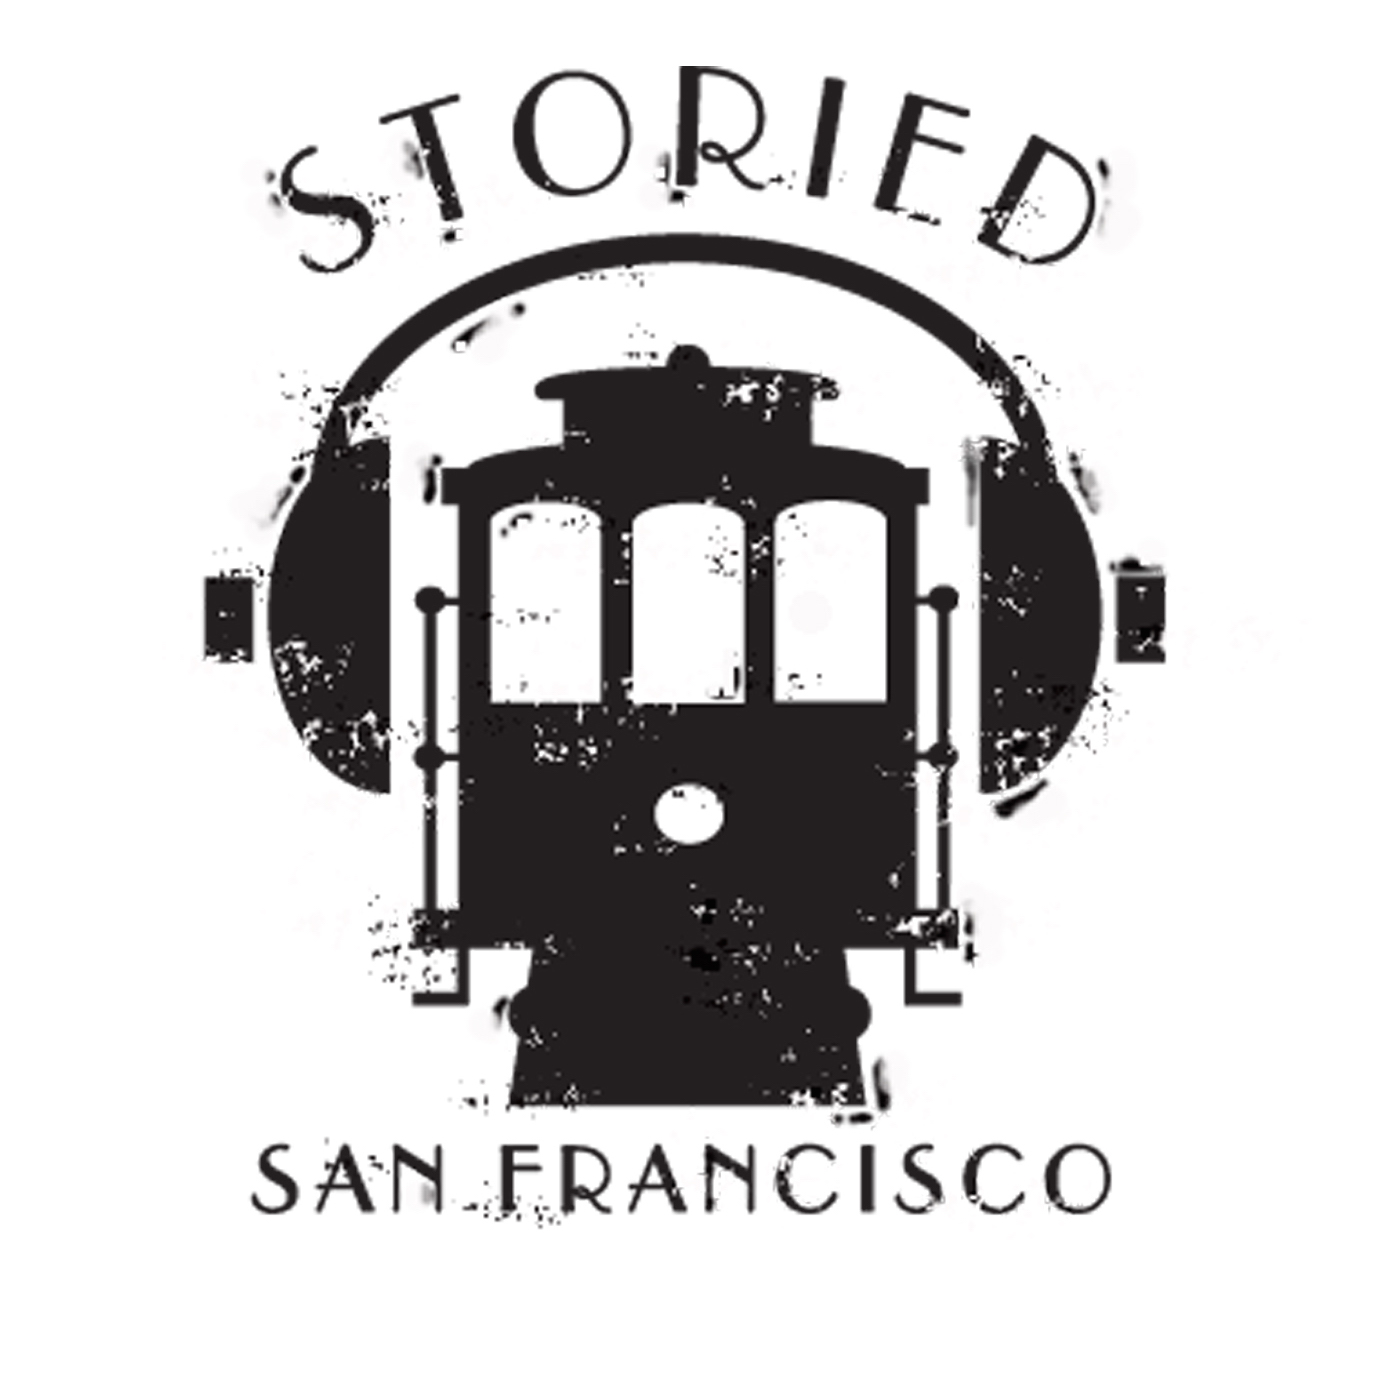 Storied: San Francisco show art